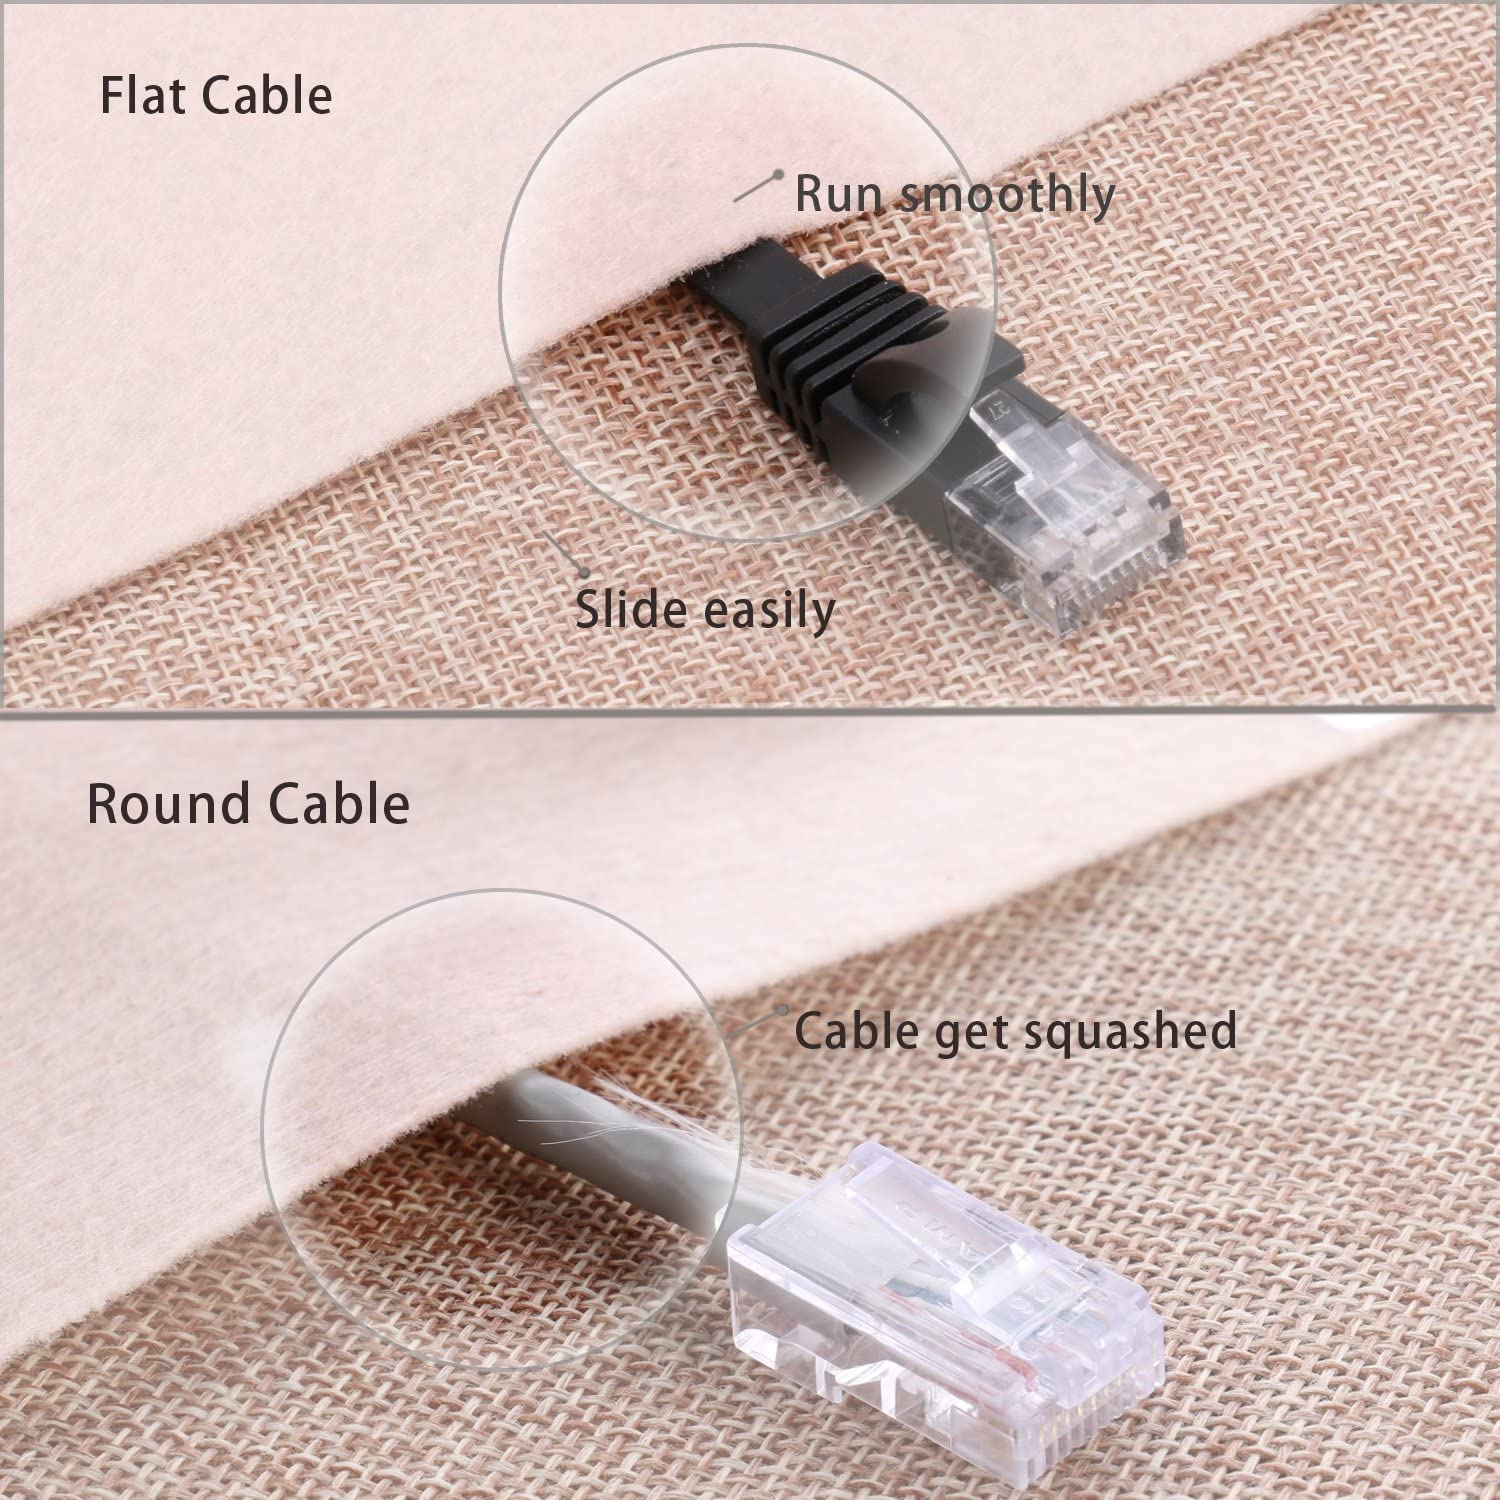 Cat 6 Ethernet Cable - Flat Internet Network Cable - Cat6 Ethernet Patch Cable Short - Cat 6 Computer LAN Cable with Snagless RJ45 Connectors (10Ft-5pack-Black)